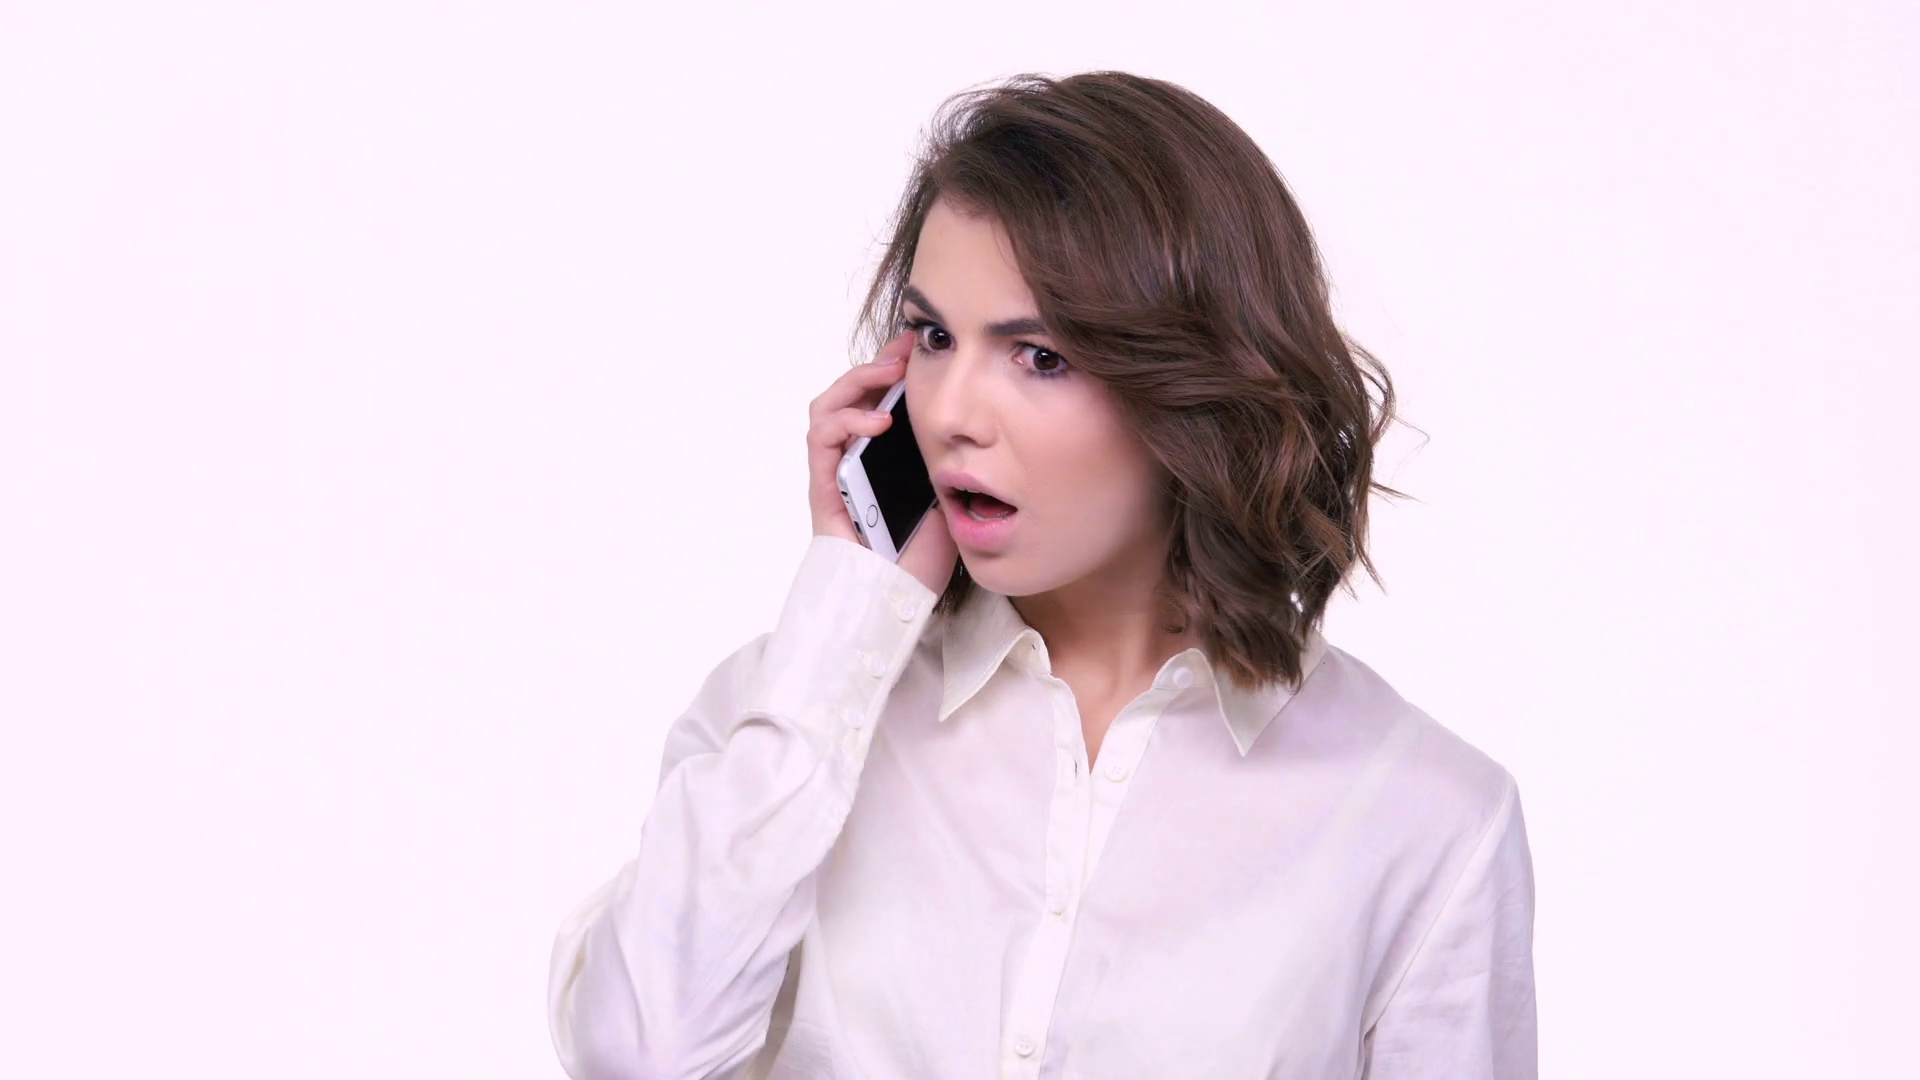 Woman Talking On Phone Png - Shocked young woman talking on mobile phone isolated over white ...